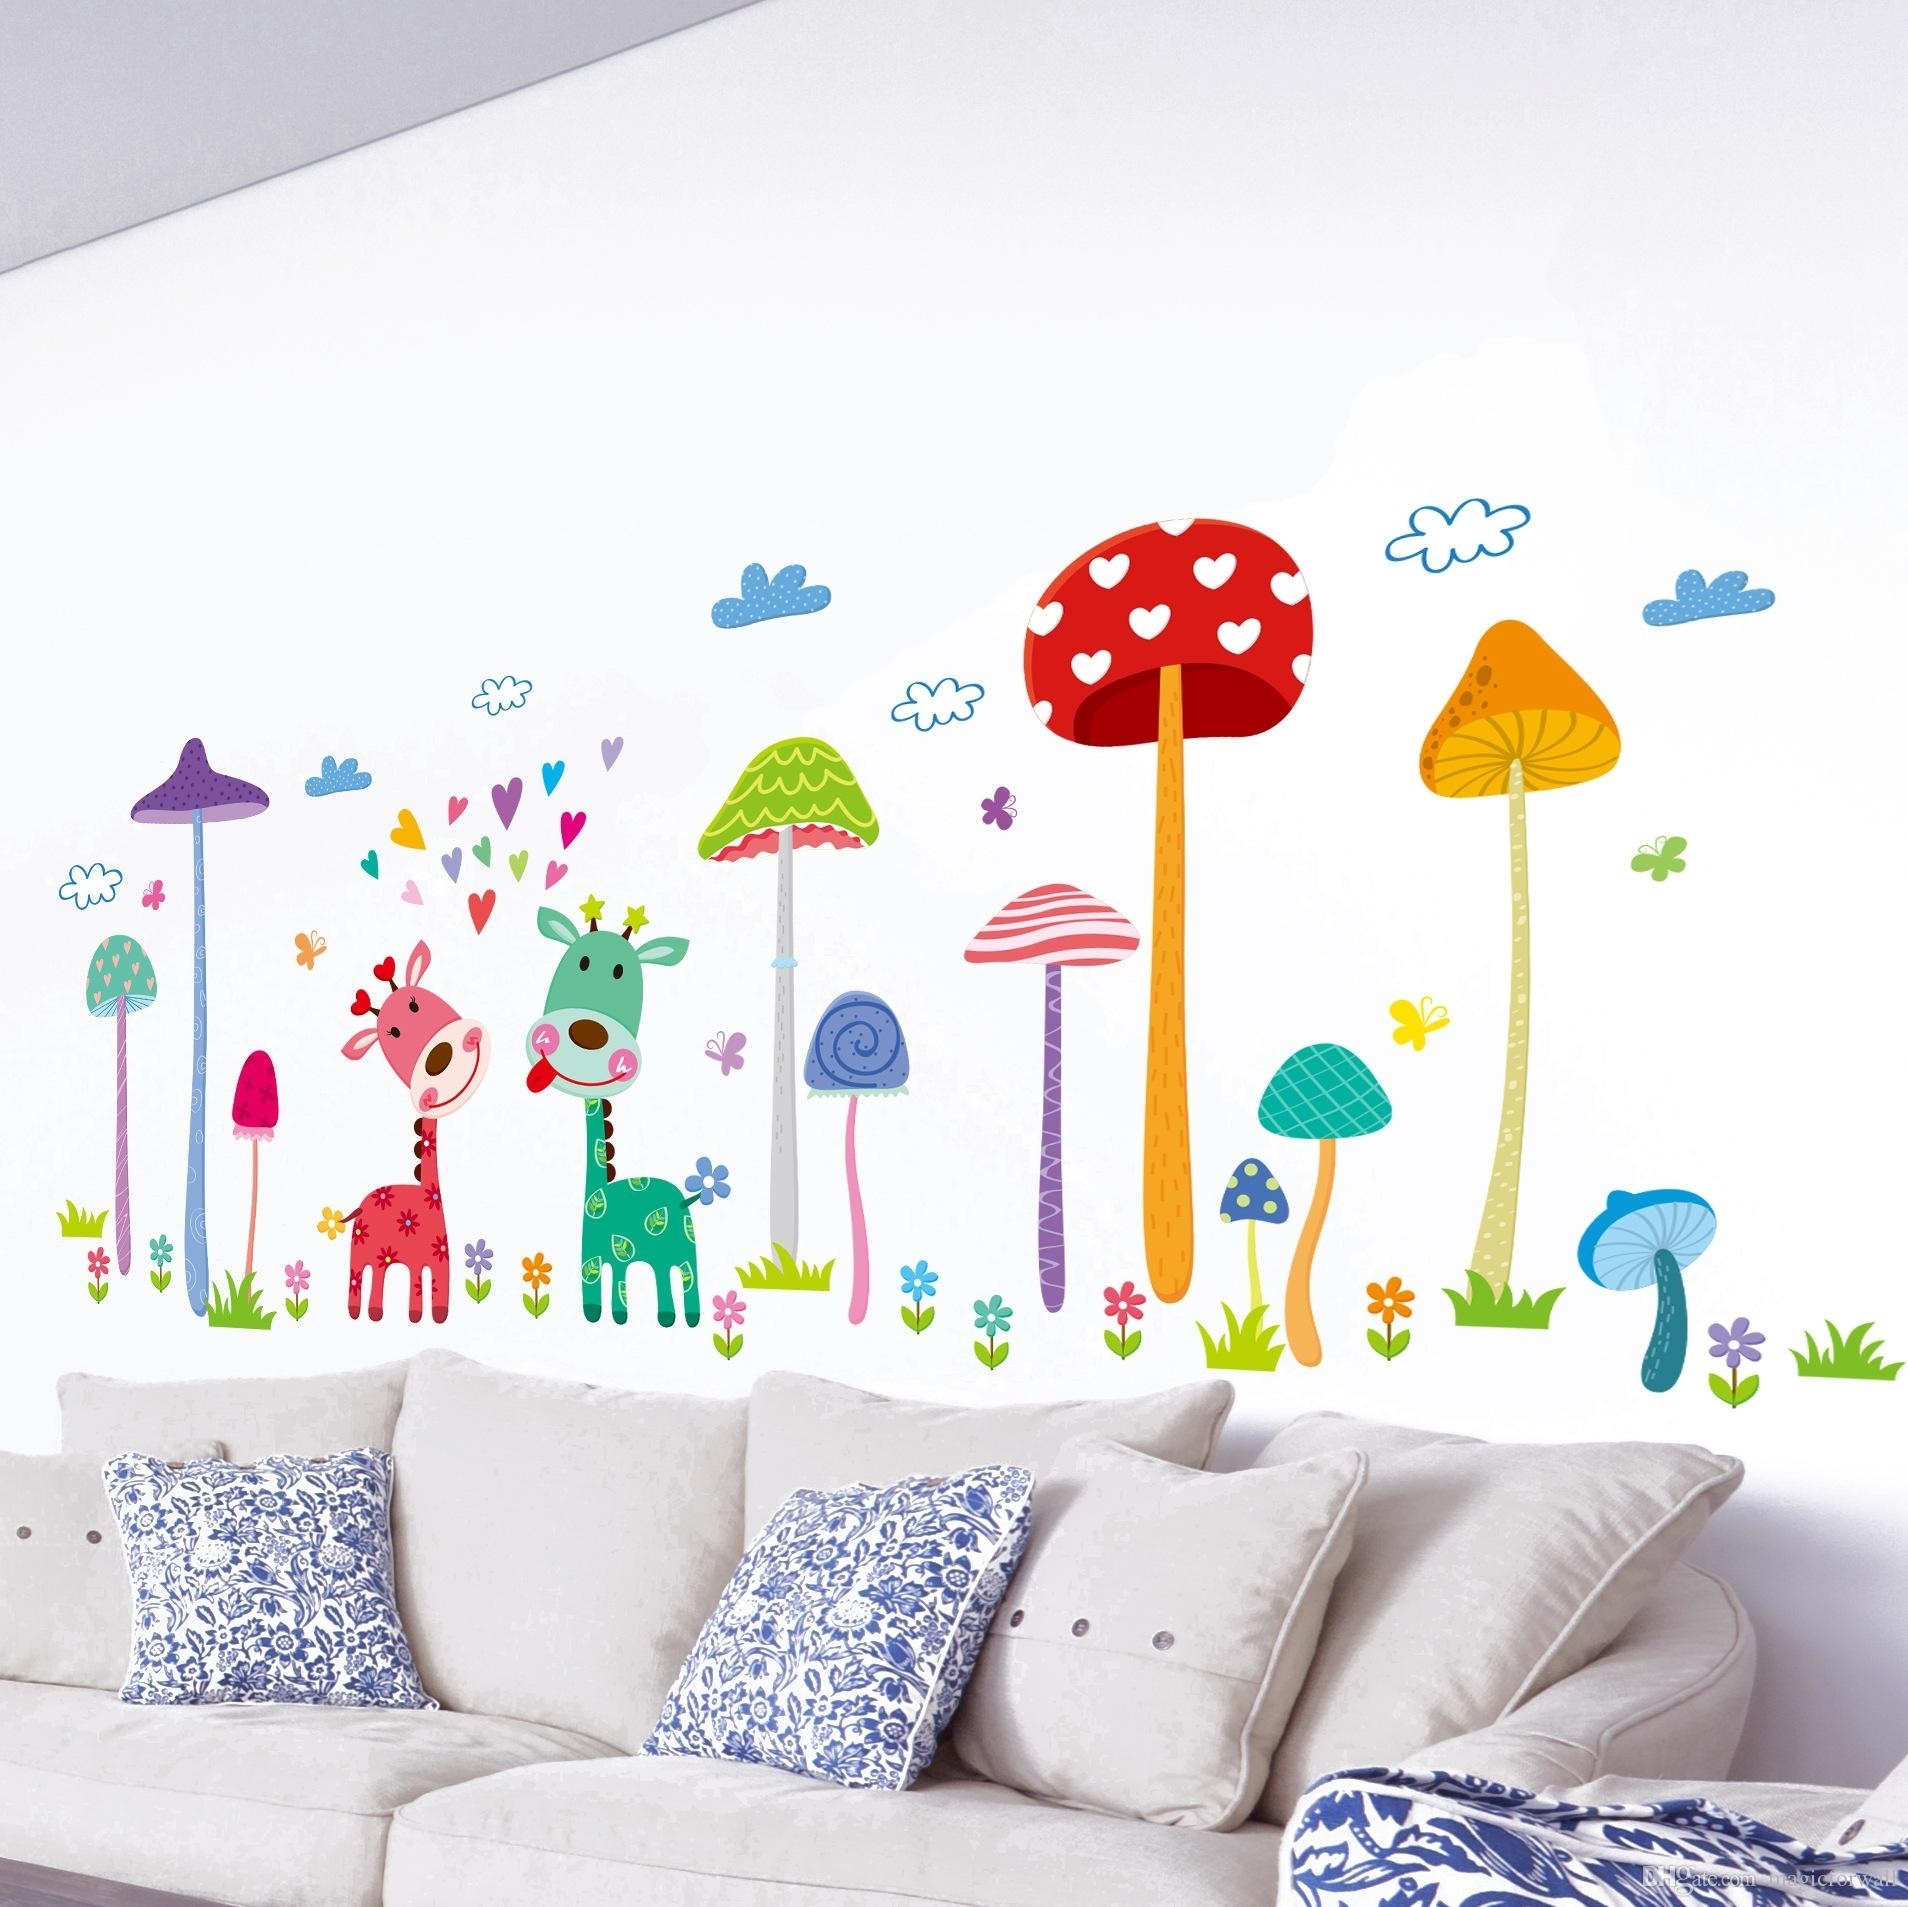 Forest Mushroom Deer Animals Home Wall Art Mural Decor Kids Babies throughout Most Popular Kids Wall Art